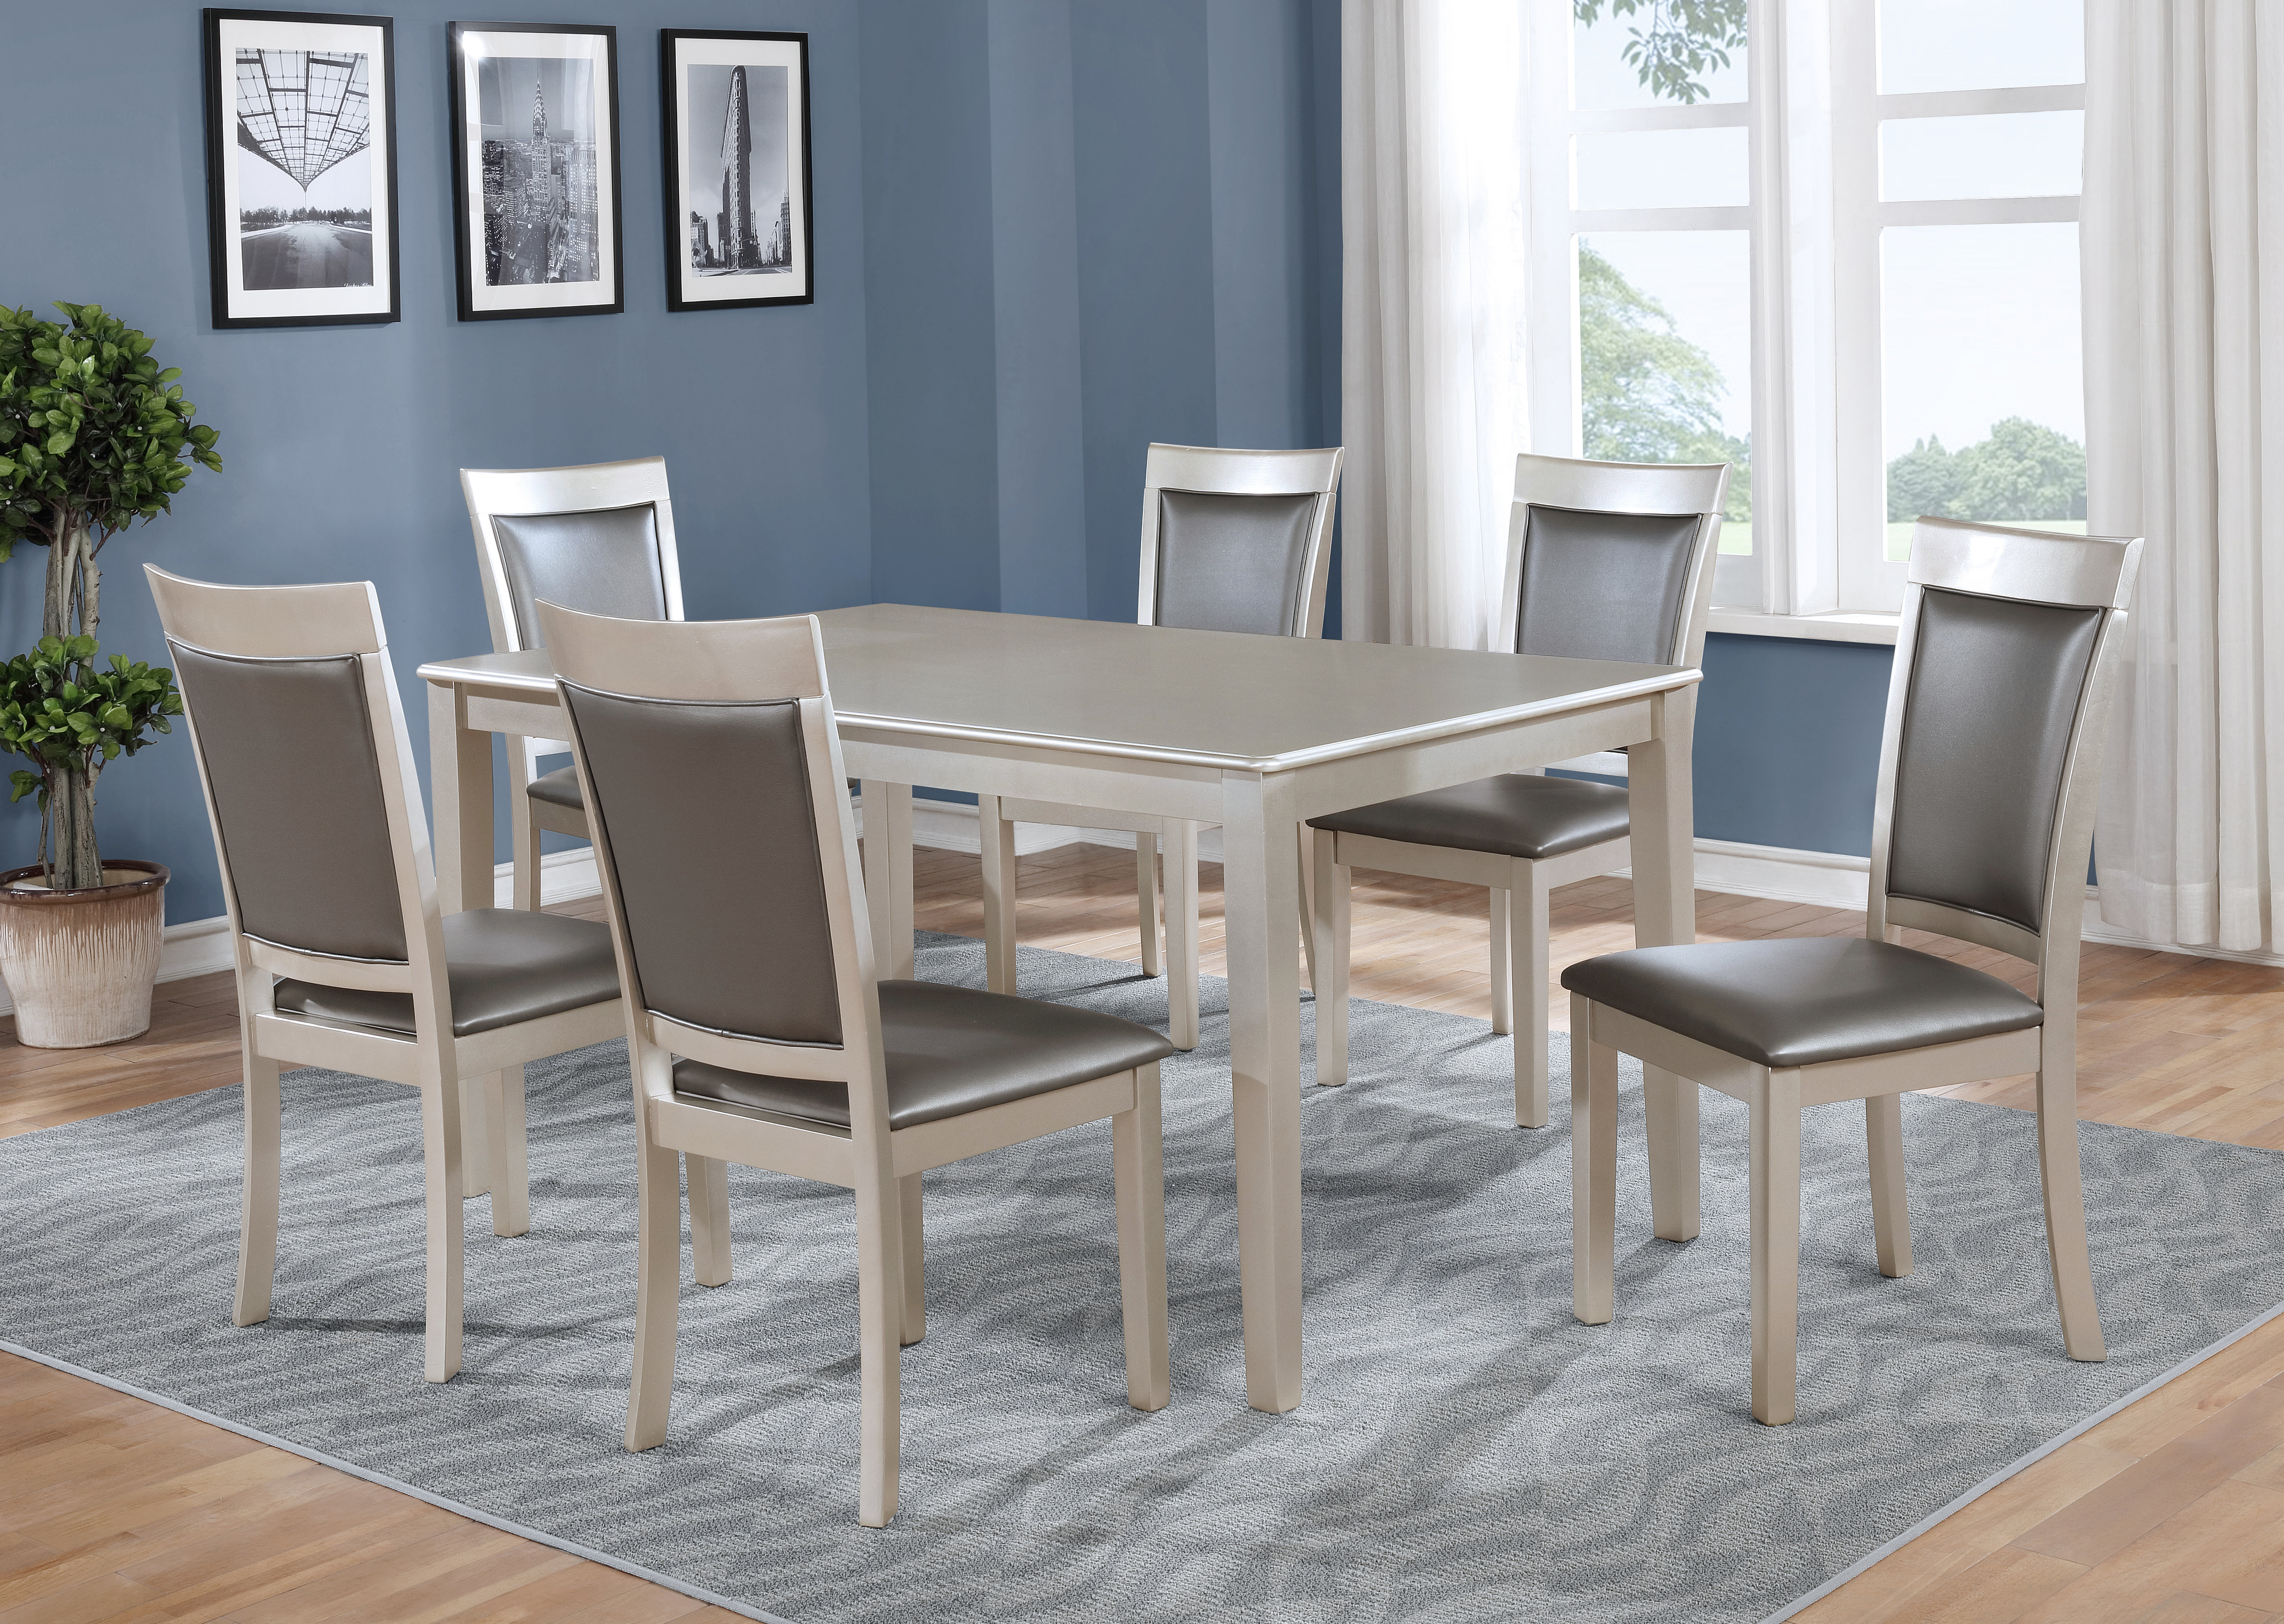 Kitterman 7 Piece Dining Set Throughout Most Current Springfield 3 Piece Dining Sets (View 9 of 20)